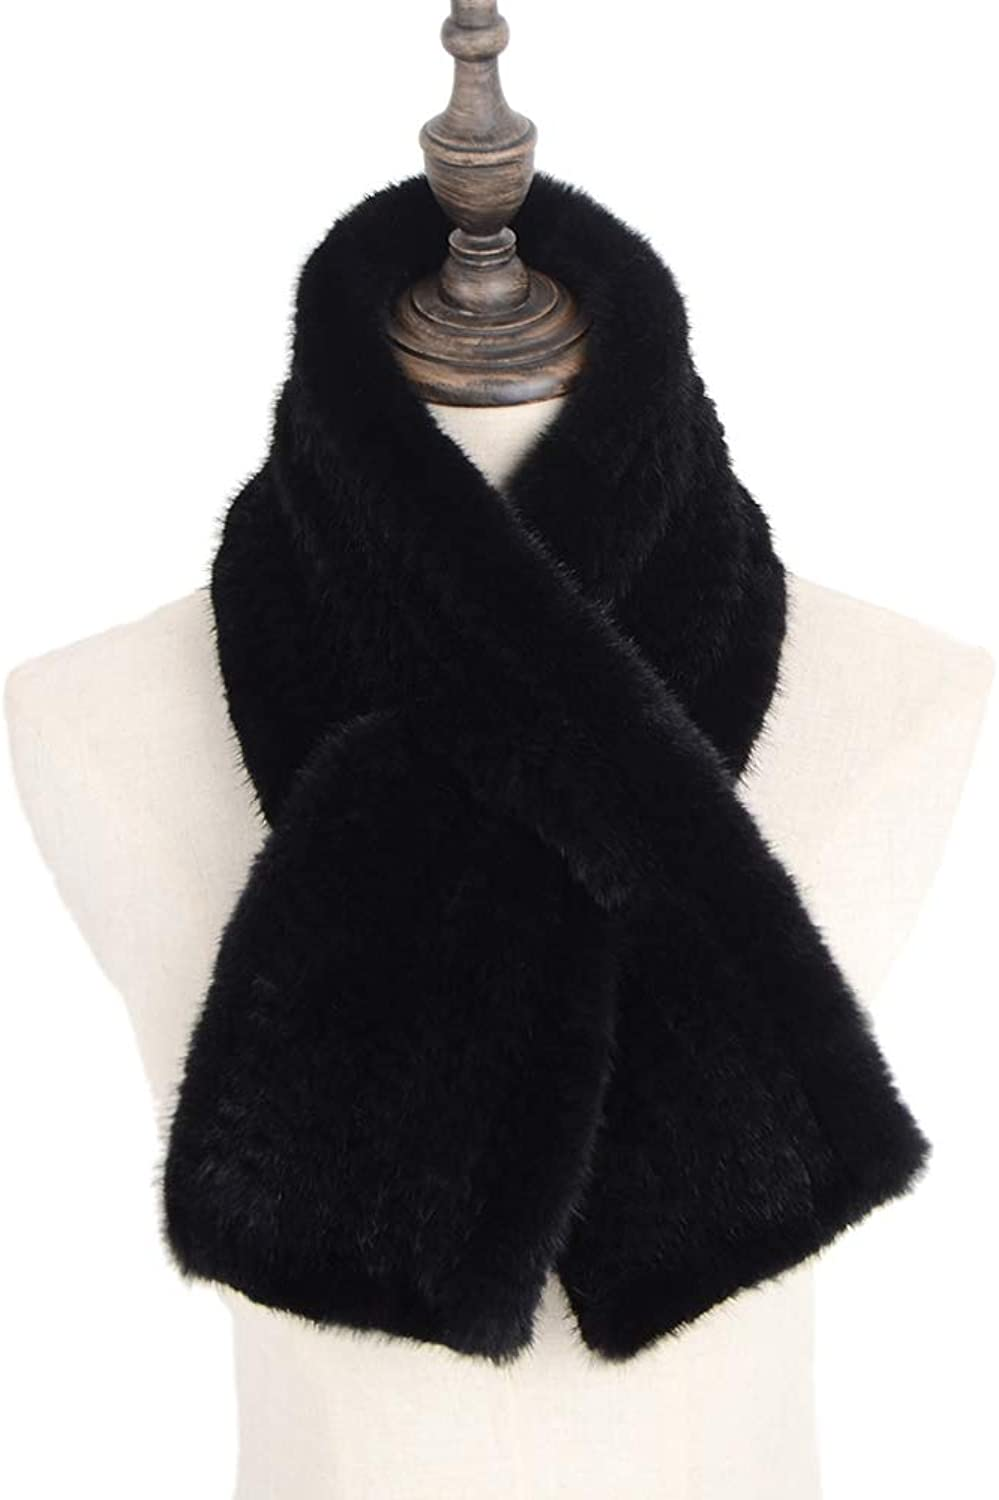 Qmfur Winter Warm Knit Real Mink Fur Knitted Scarf Wrap Neck